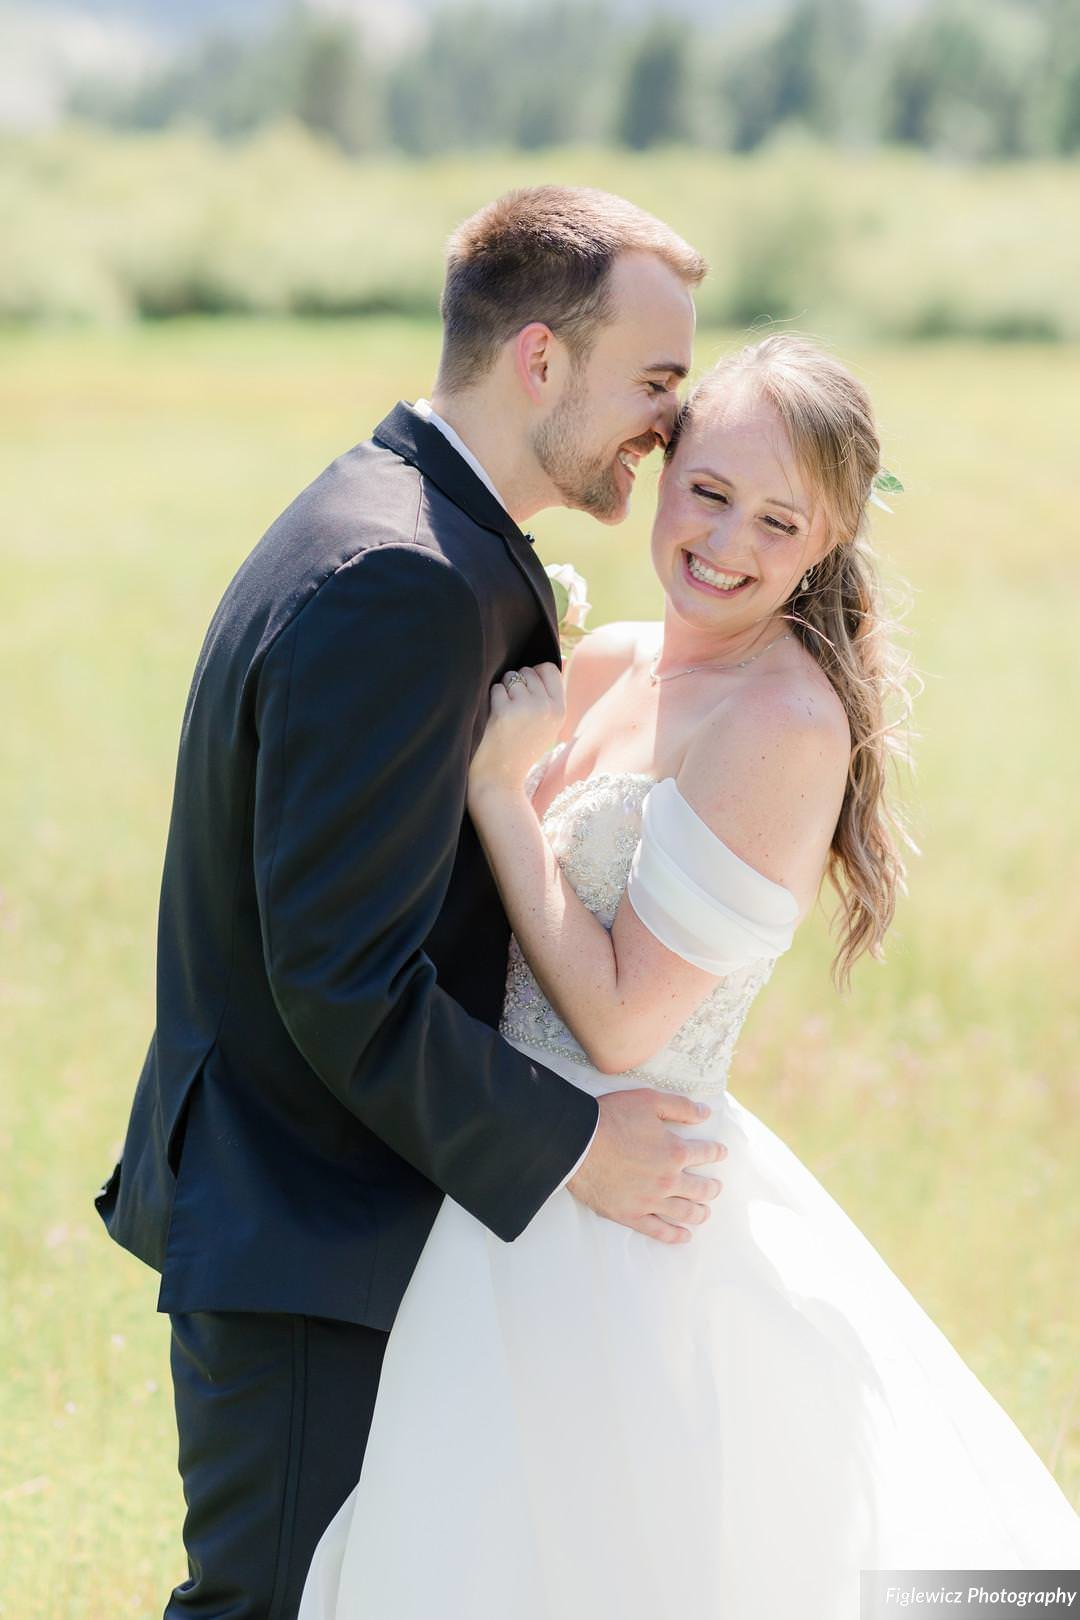 Garden_Tinsley_FiglewiczPhotography_LakeTahoeWeddingSquawValleyCreekTaylorBrendan00027_big